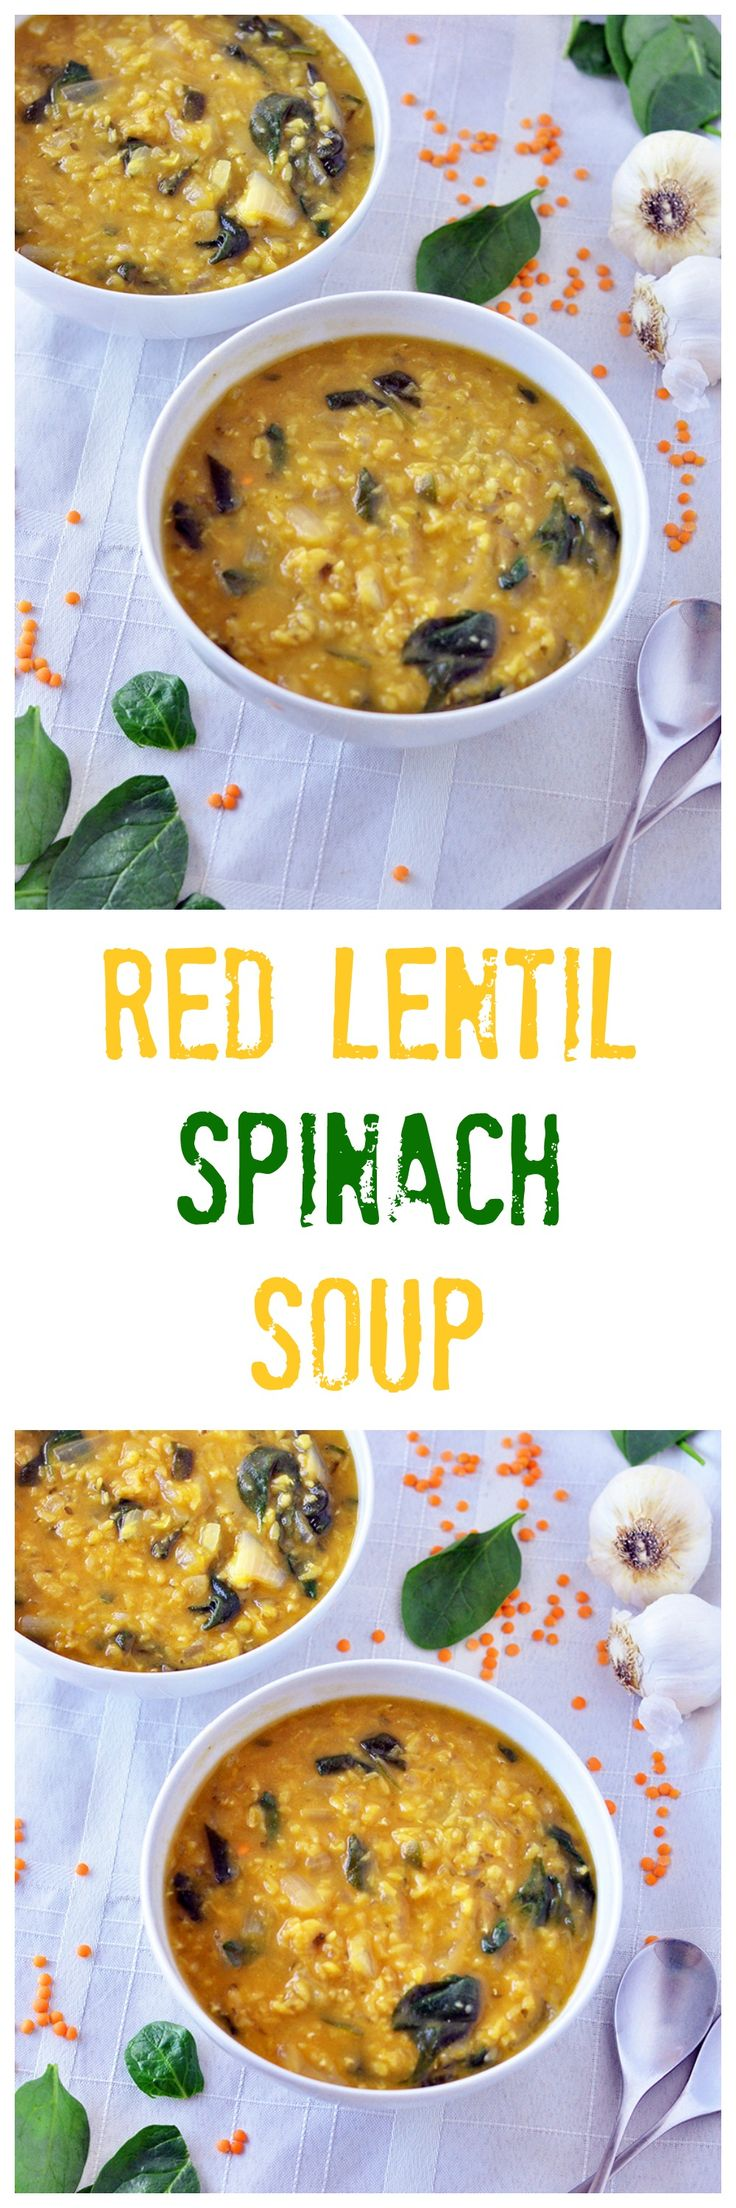 Get back on the healthy track with this Red Lentil and Spinach Soup.  A simple meal sure to please!  Vegan and gluten free.